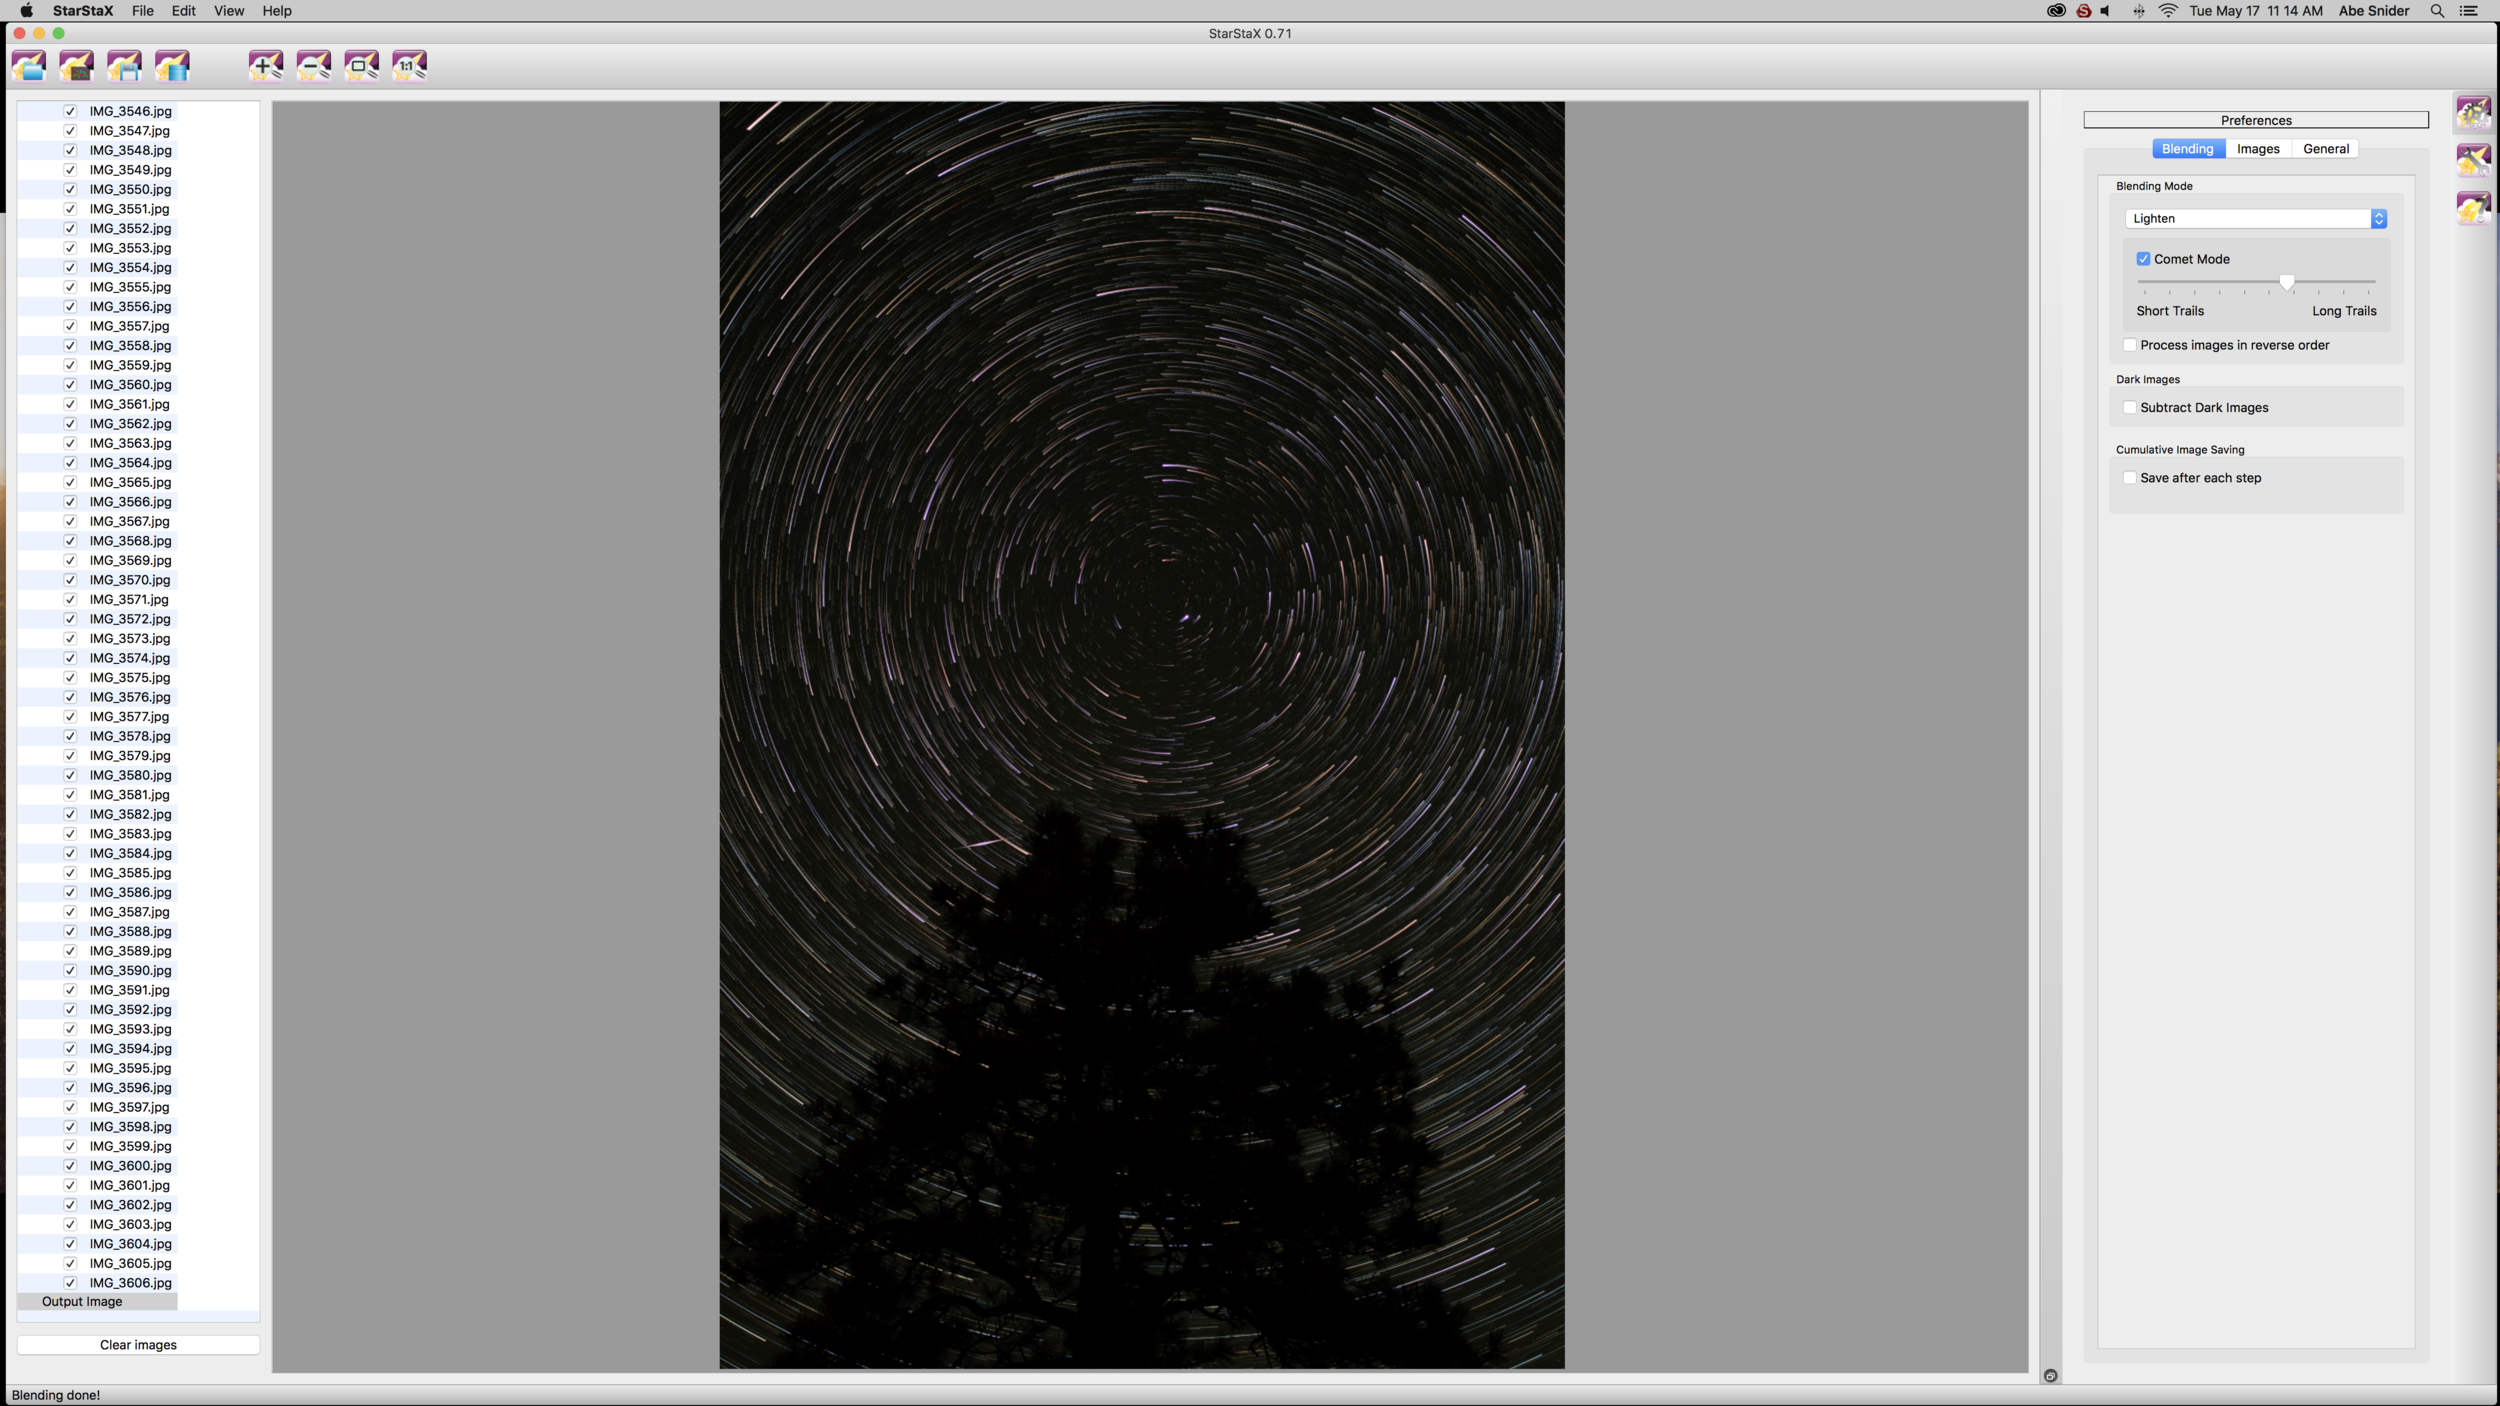 Starstax program after adding up all images into one stack.